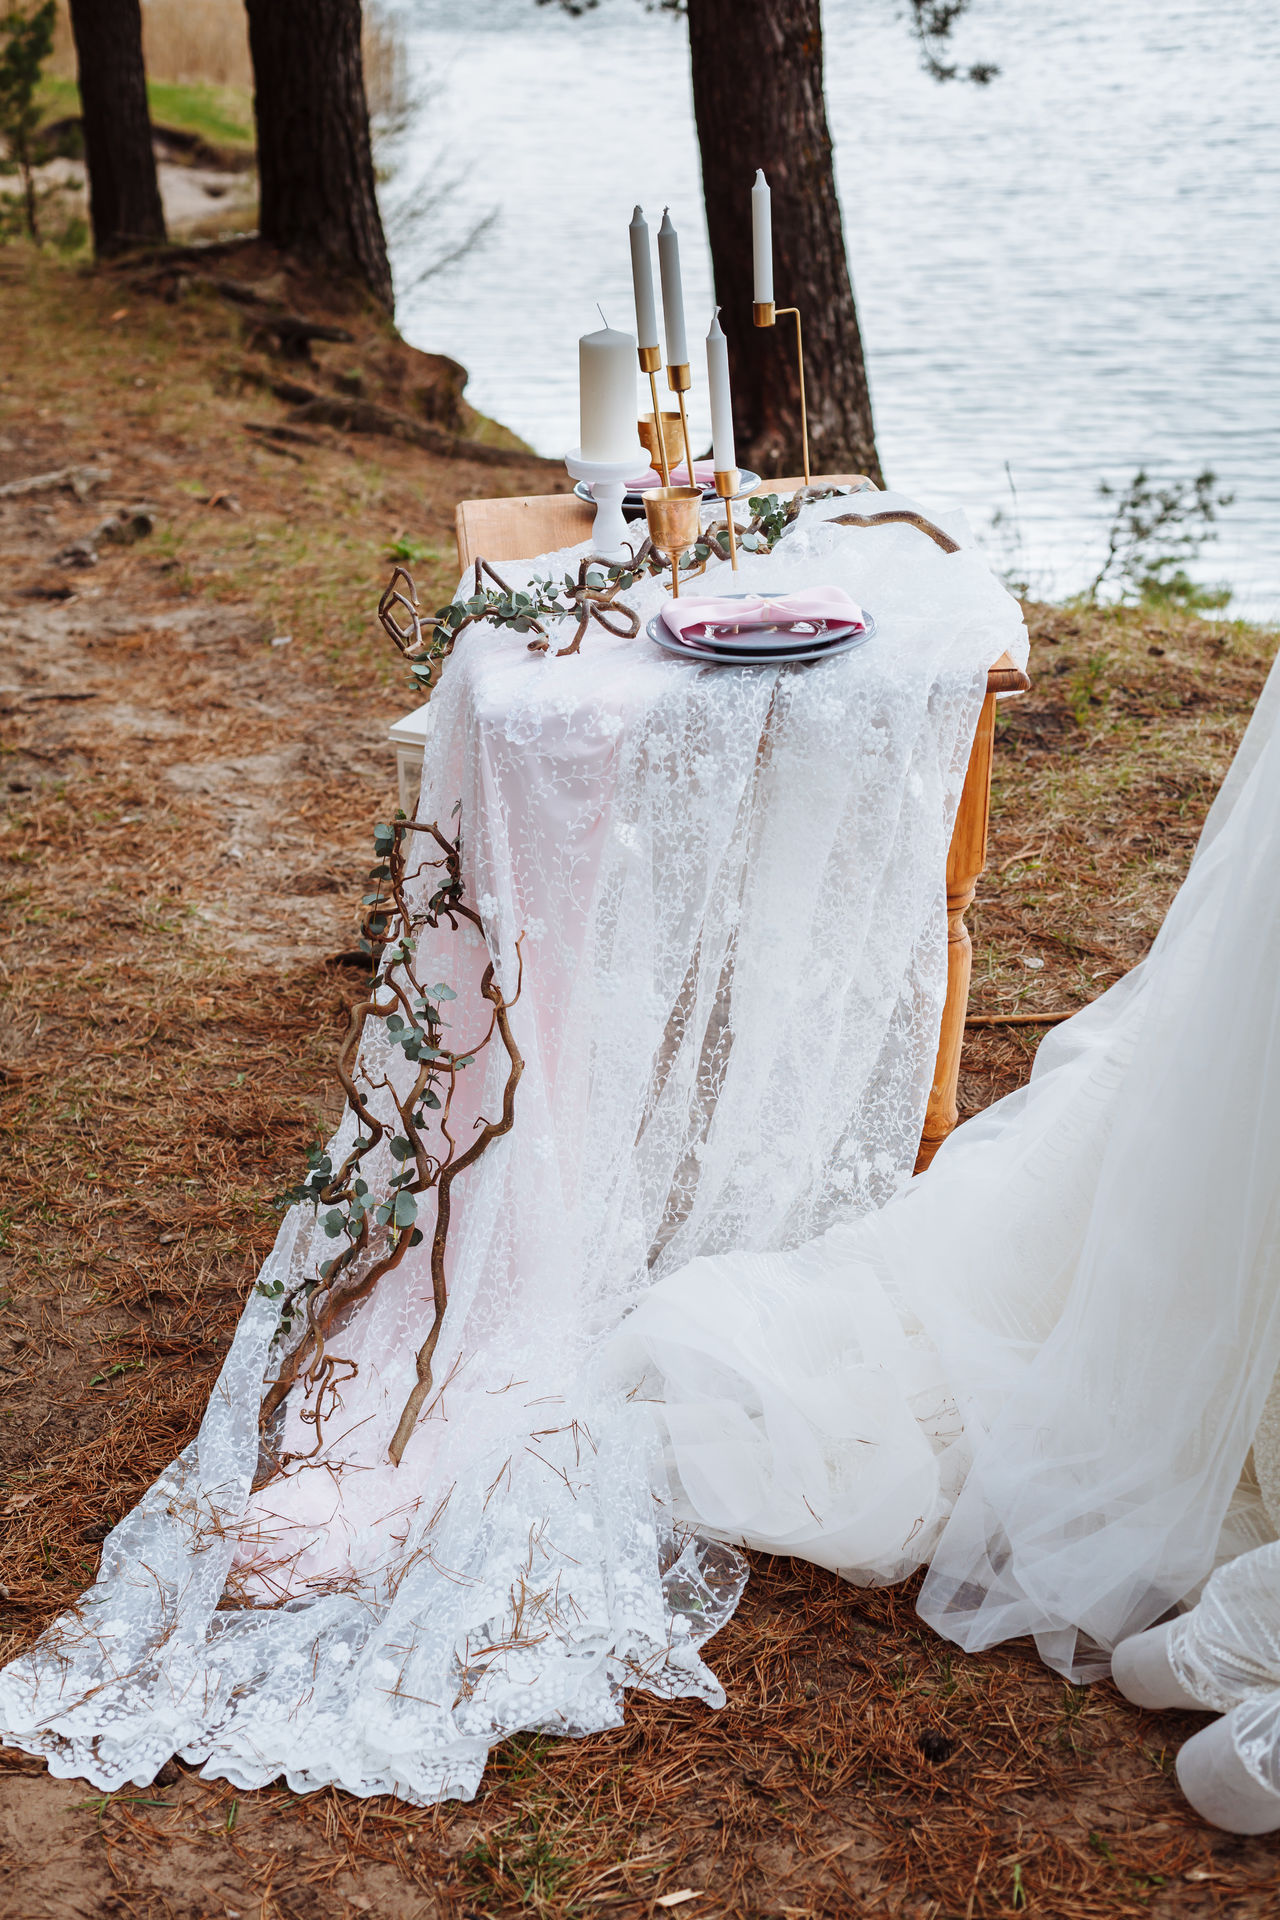 Day Decor Decoration Nature No People Outdoors Rustic Rustic Style Water Wedding Wedding Wedding Decoration Wedding Dress White Lace